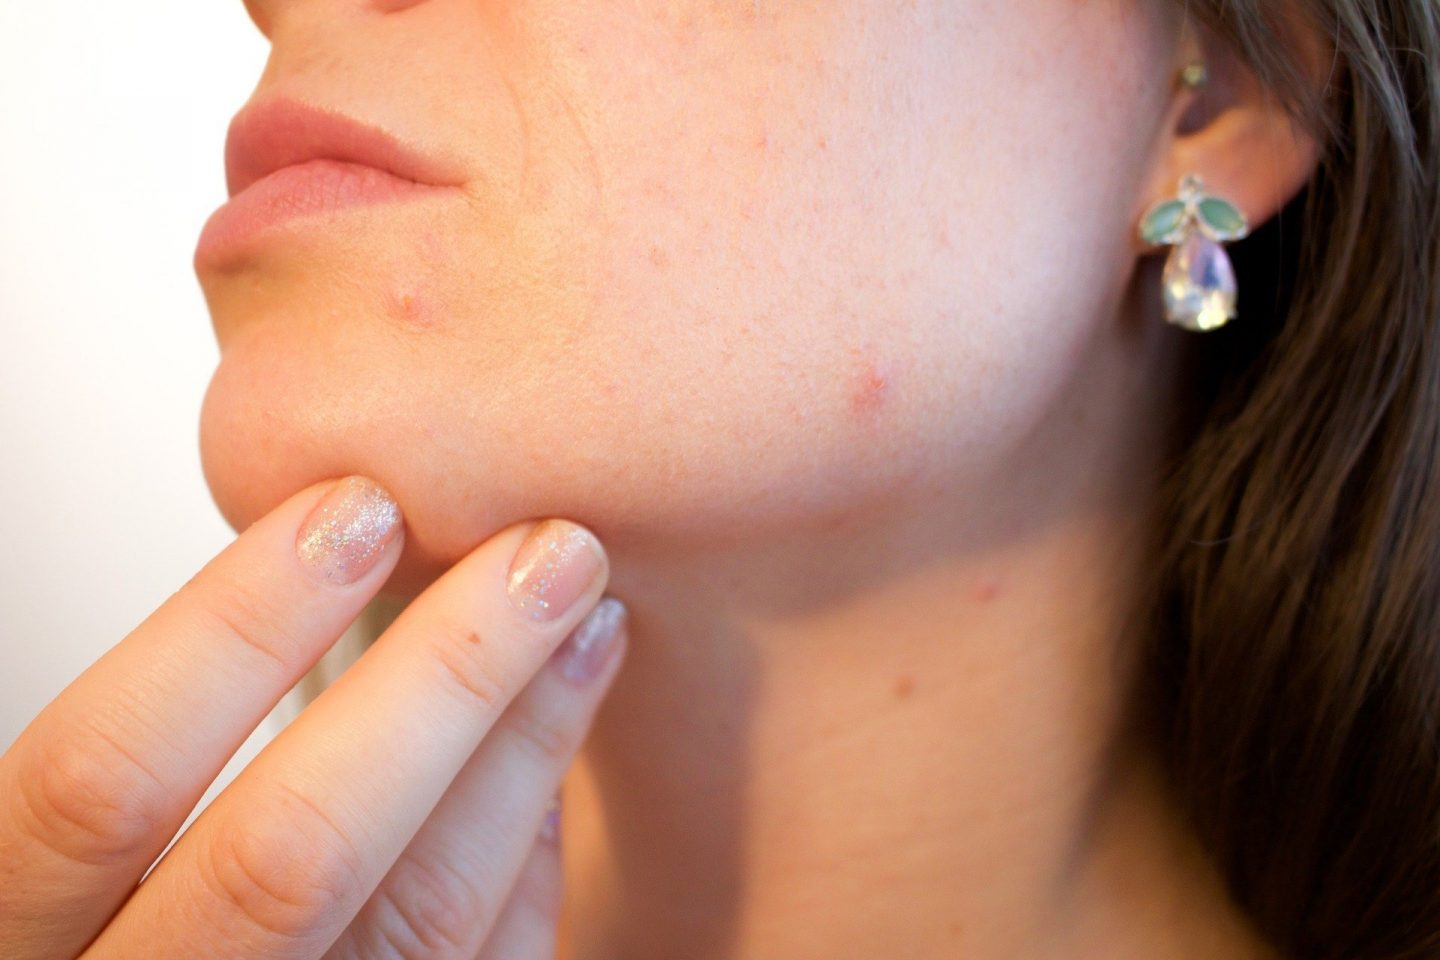 How to know if you have skin acne